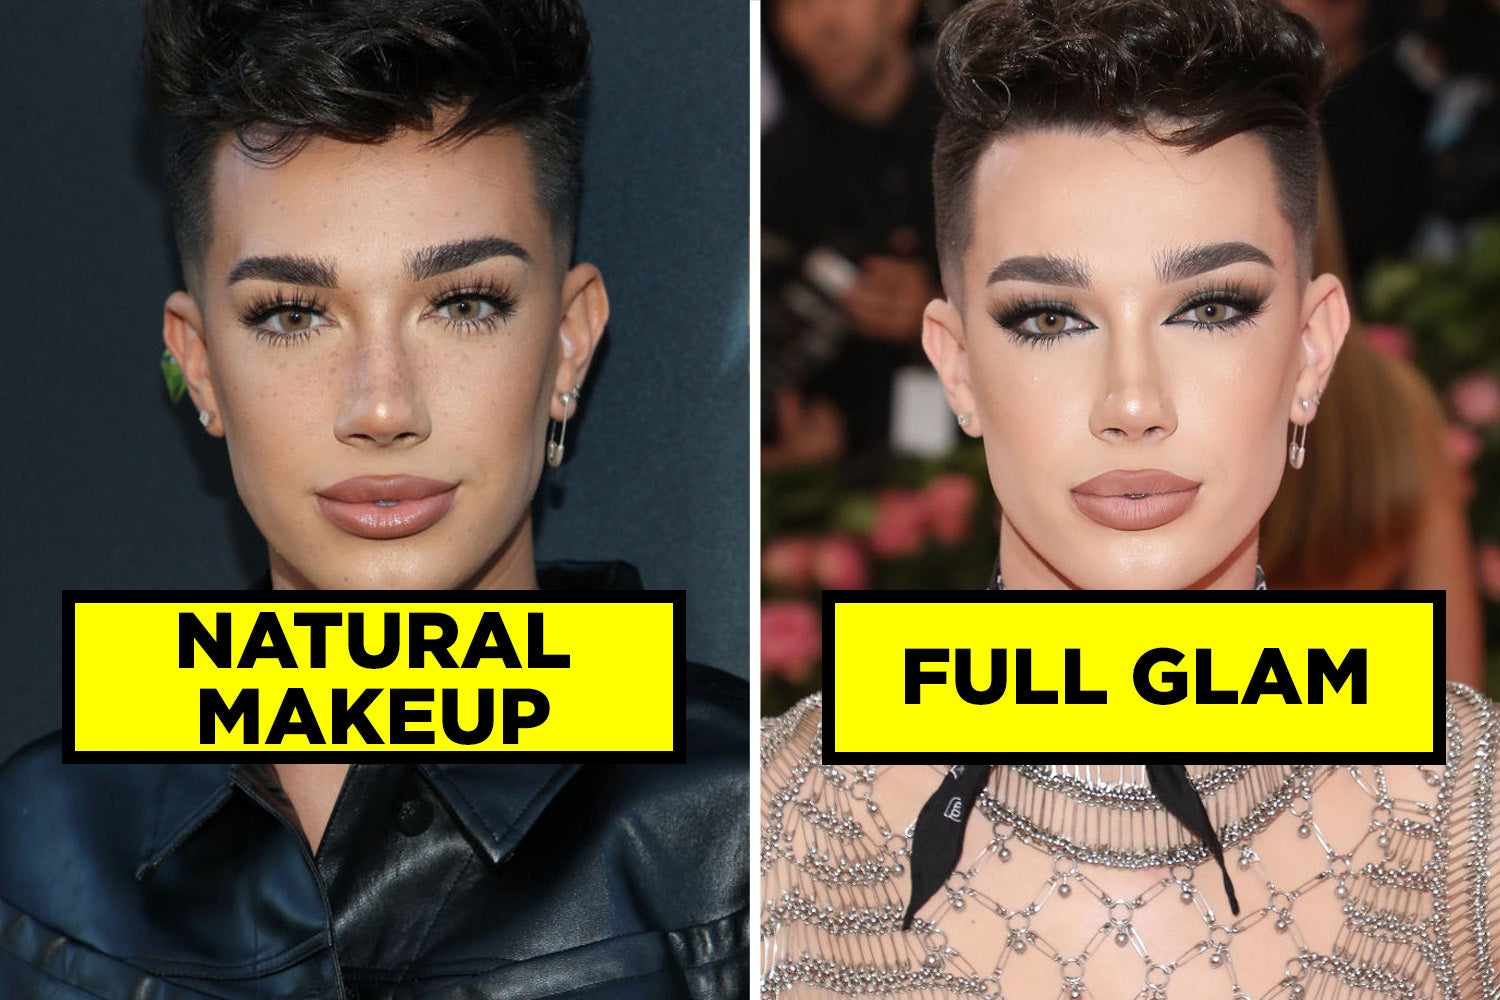 Do You Prefer These Famous People's Natural Makeup Or Full Glam Looks?